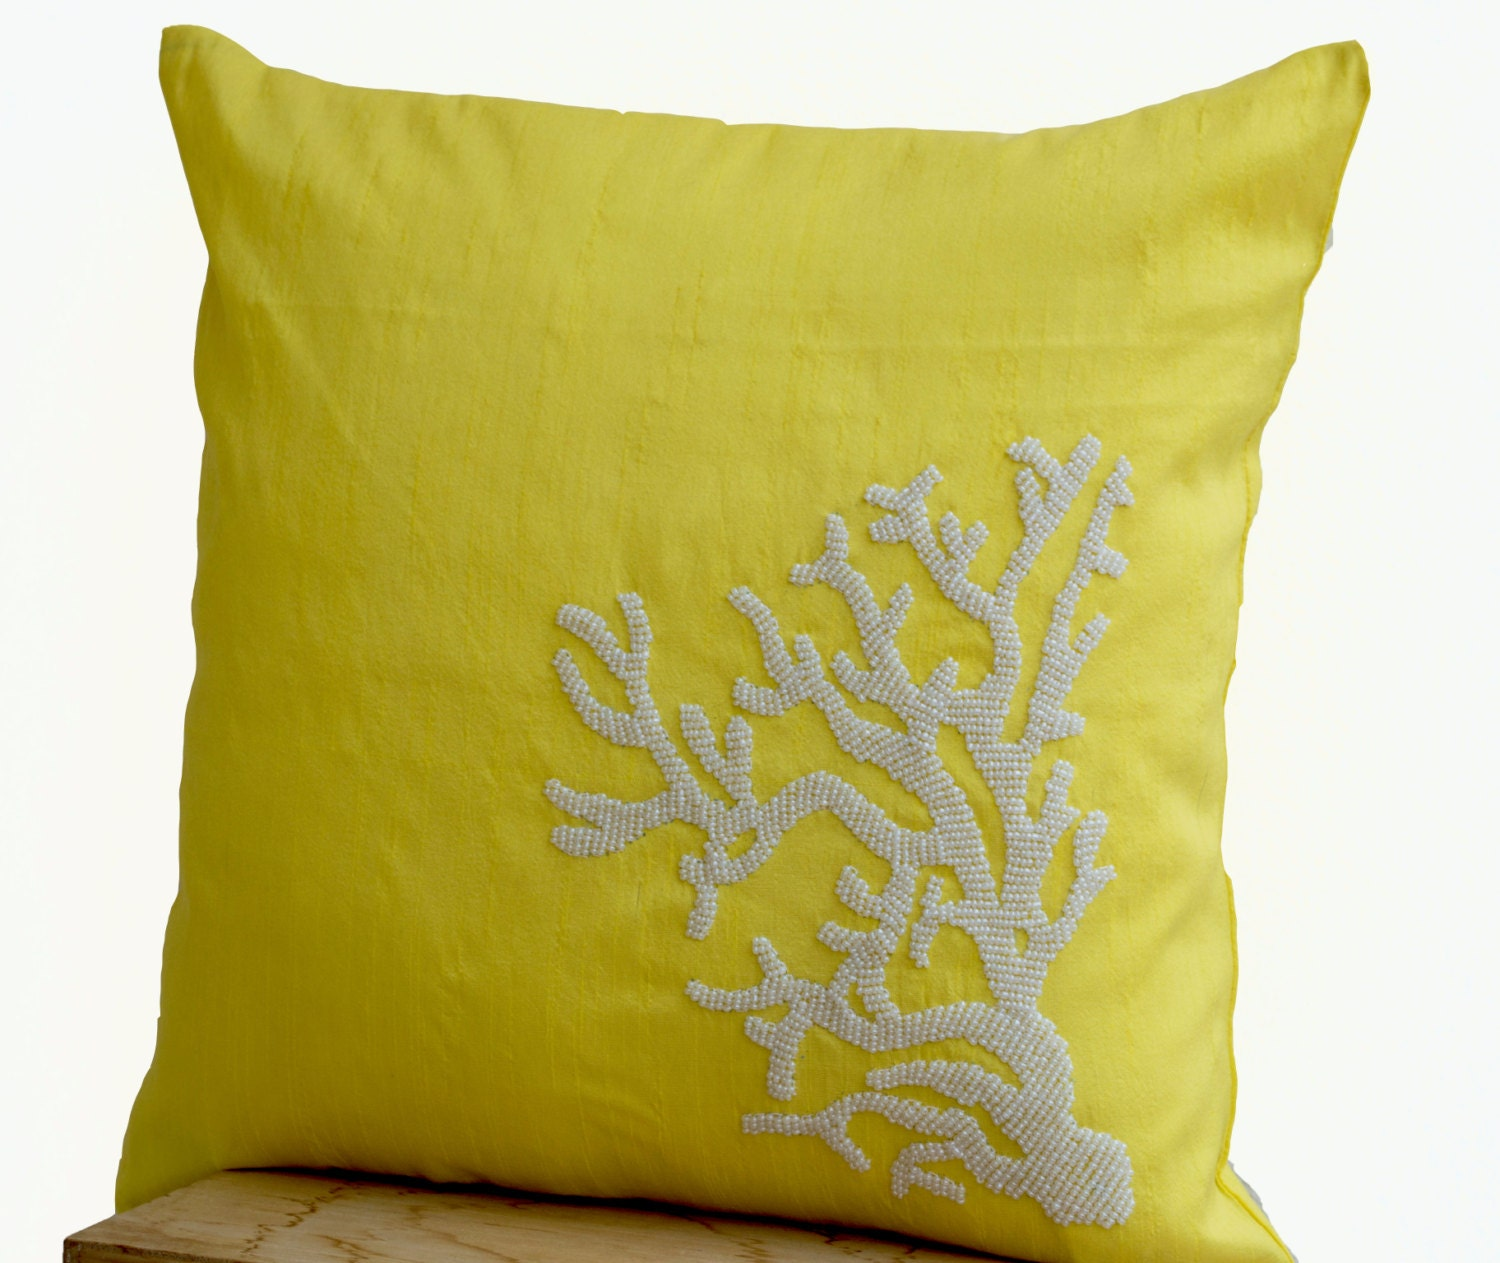 Yellow Silk Decorative Pillows : Decorative pillow with white coral on yellow silk by AmoreBeaute